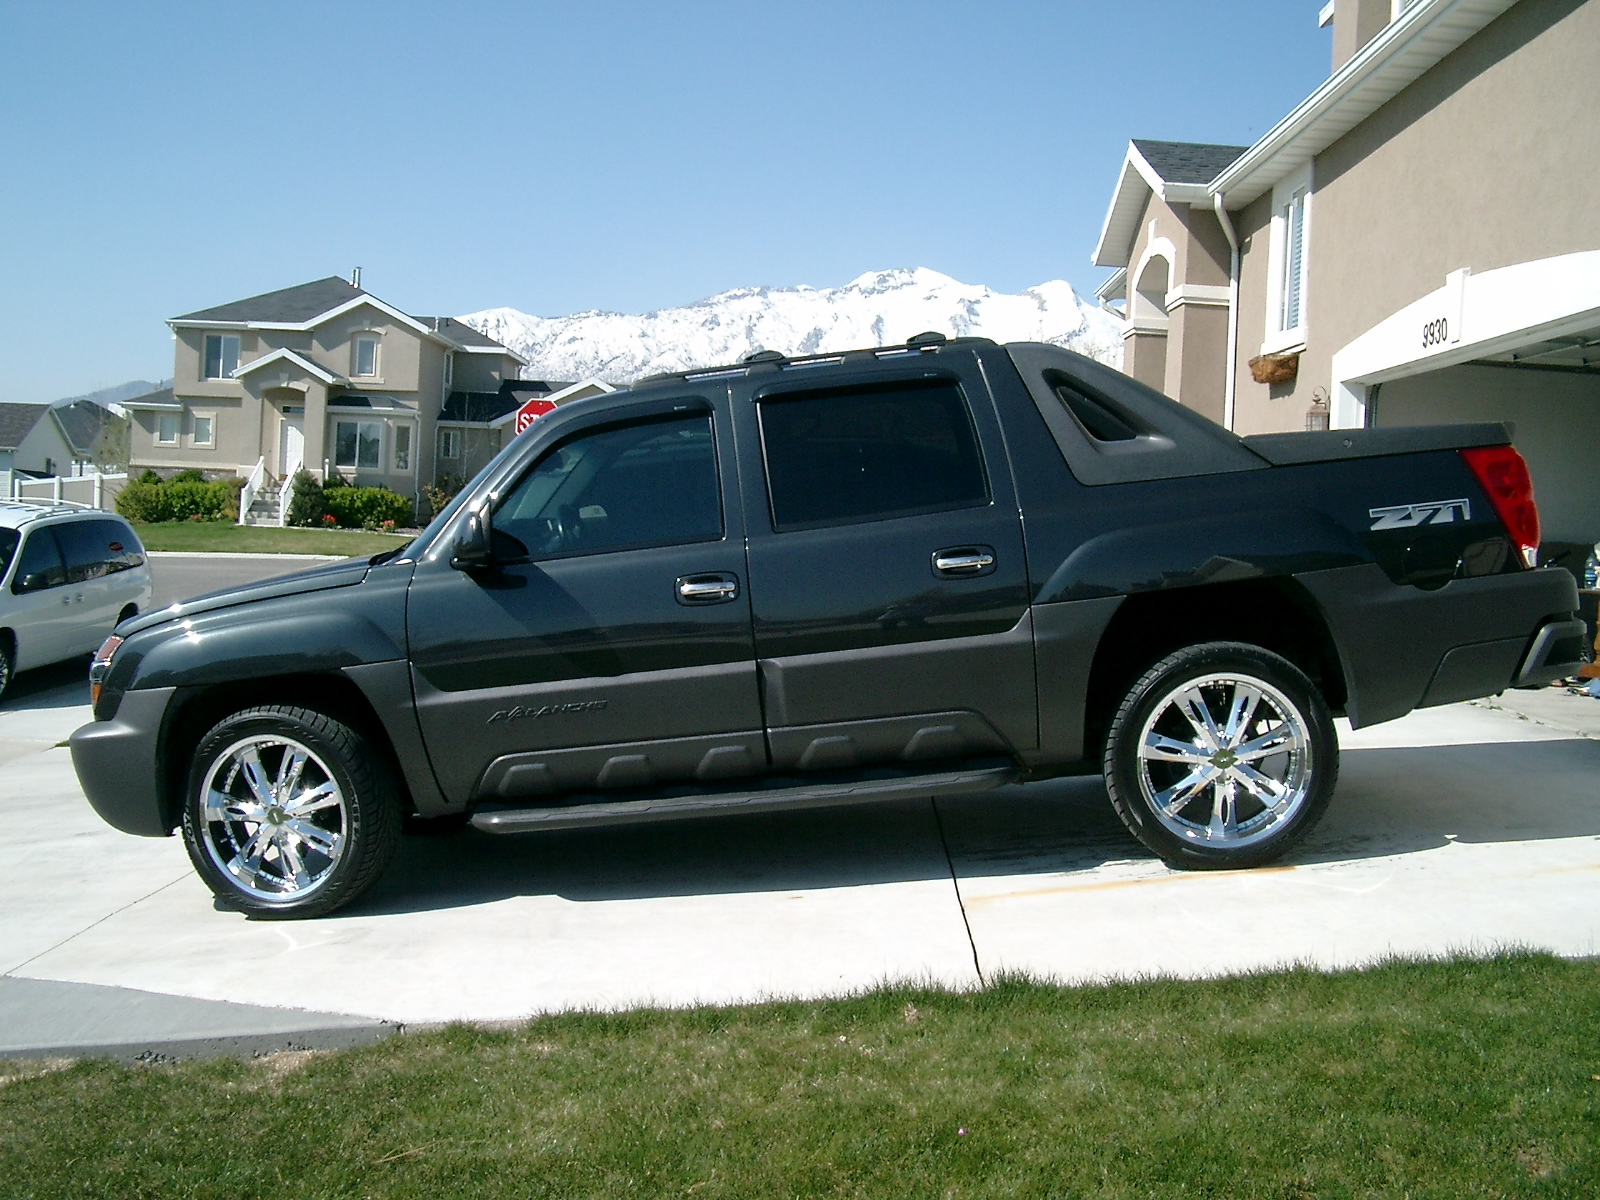 08 chevy silverado recalls autos post. Black Bedroom Furniture Sets. Home Design Ideas